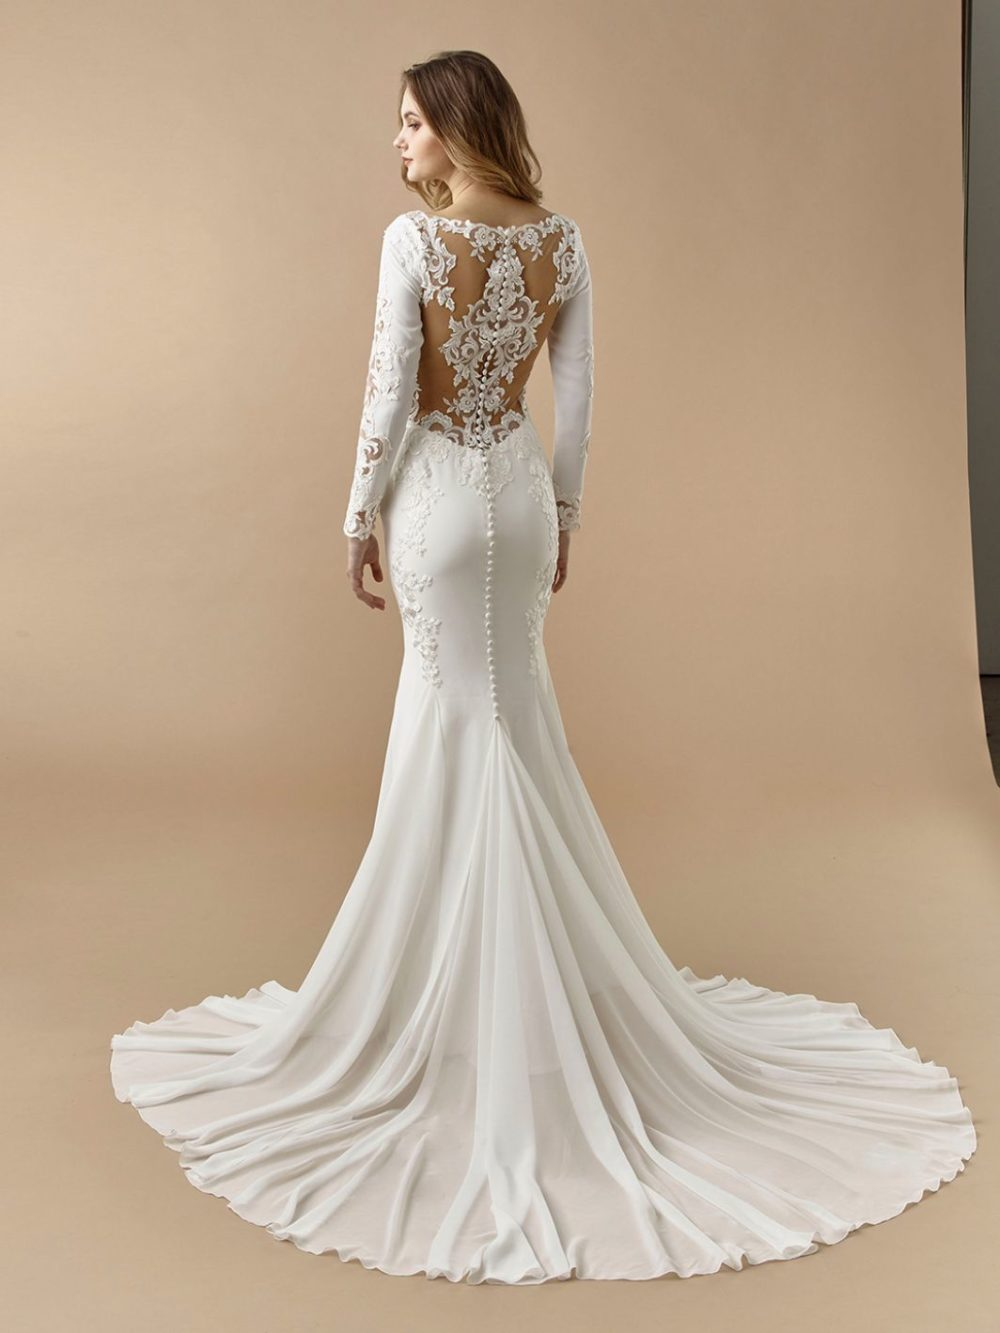 Beautiful by Enzoani Wedding gown dress BT20-11 back